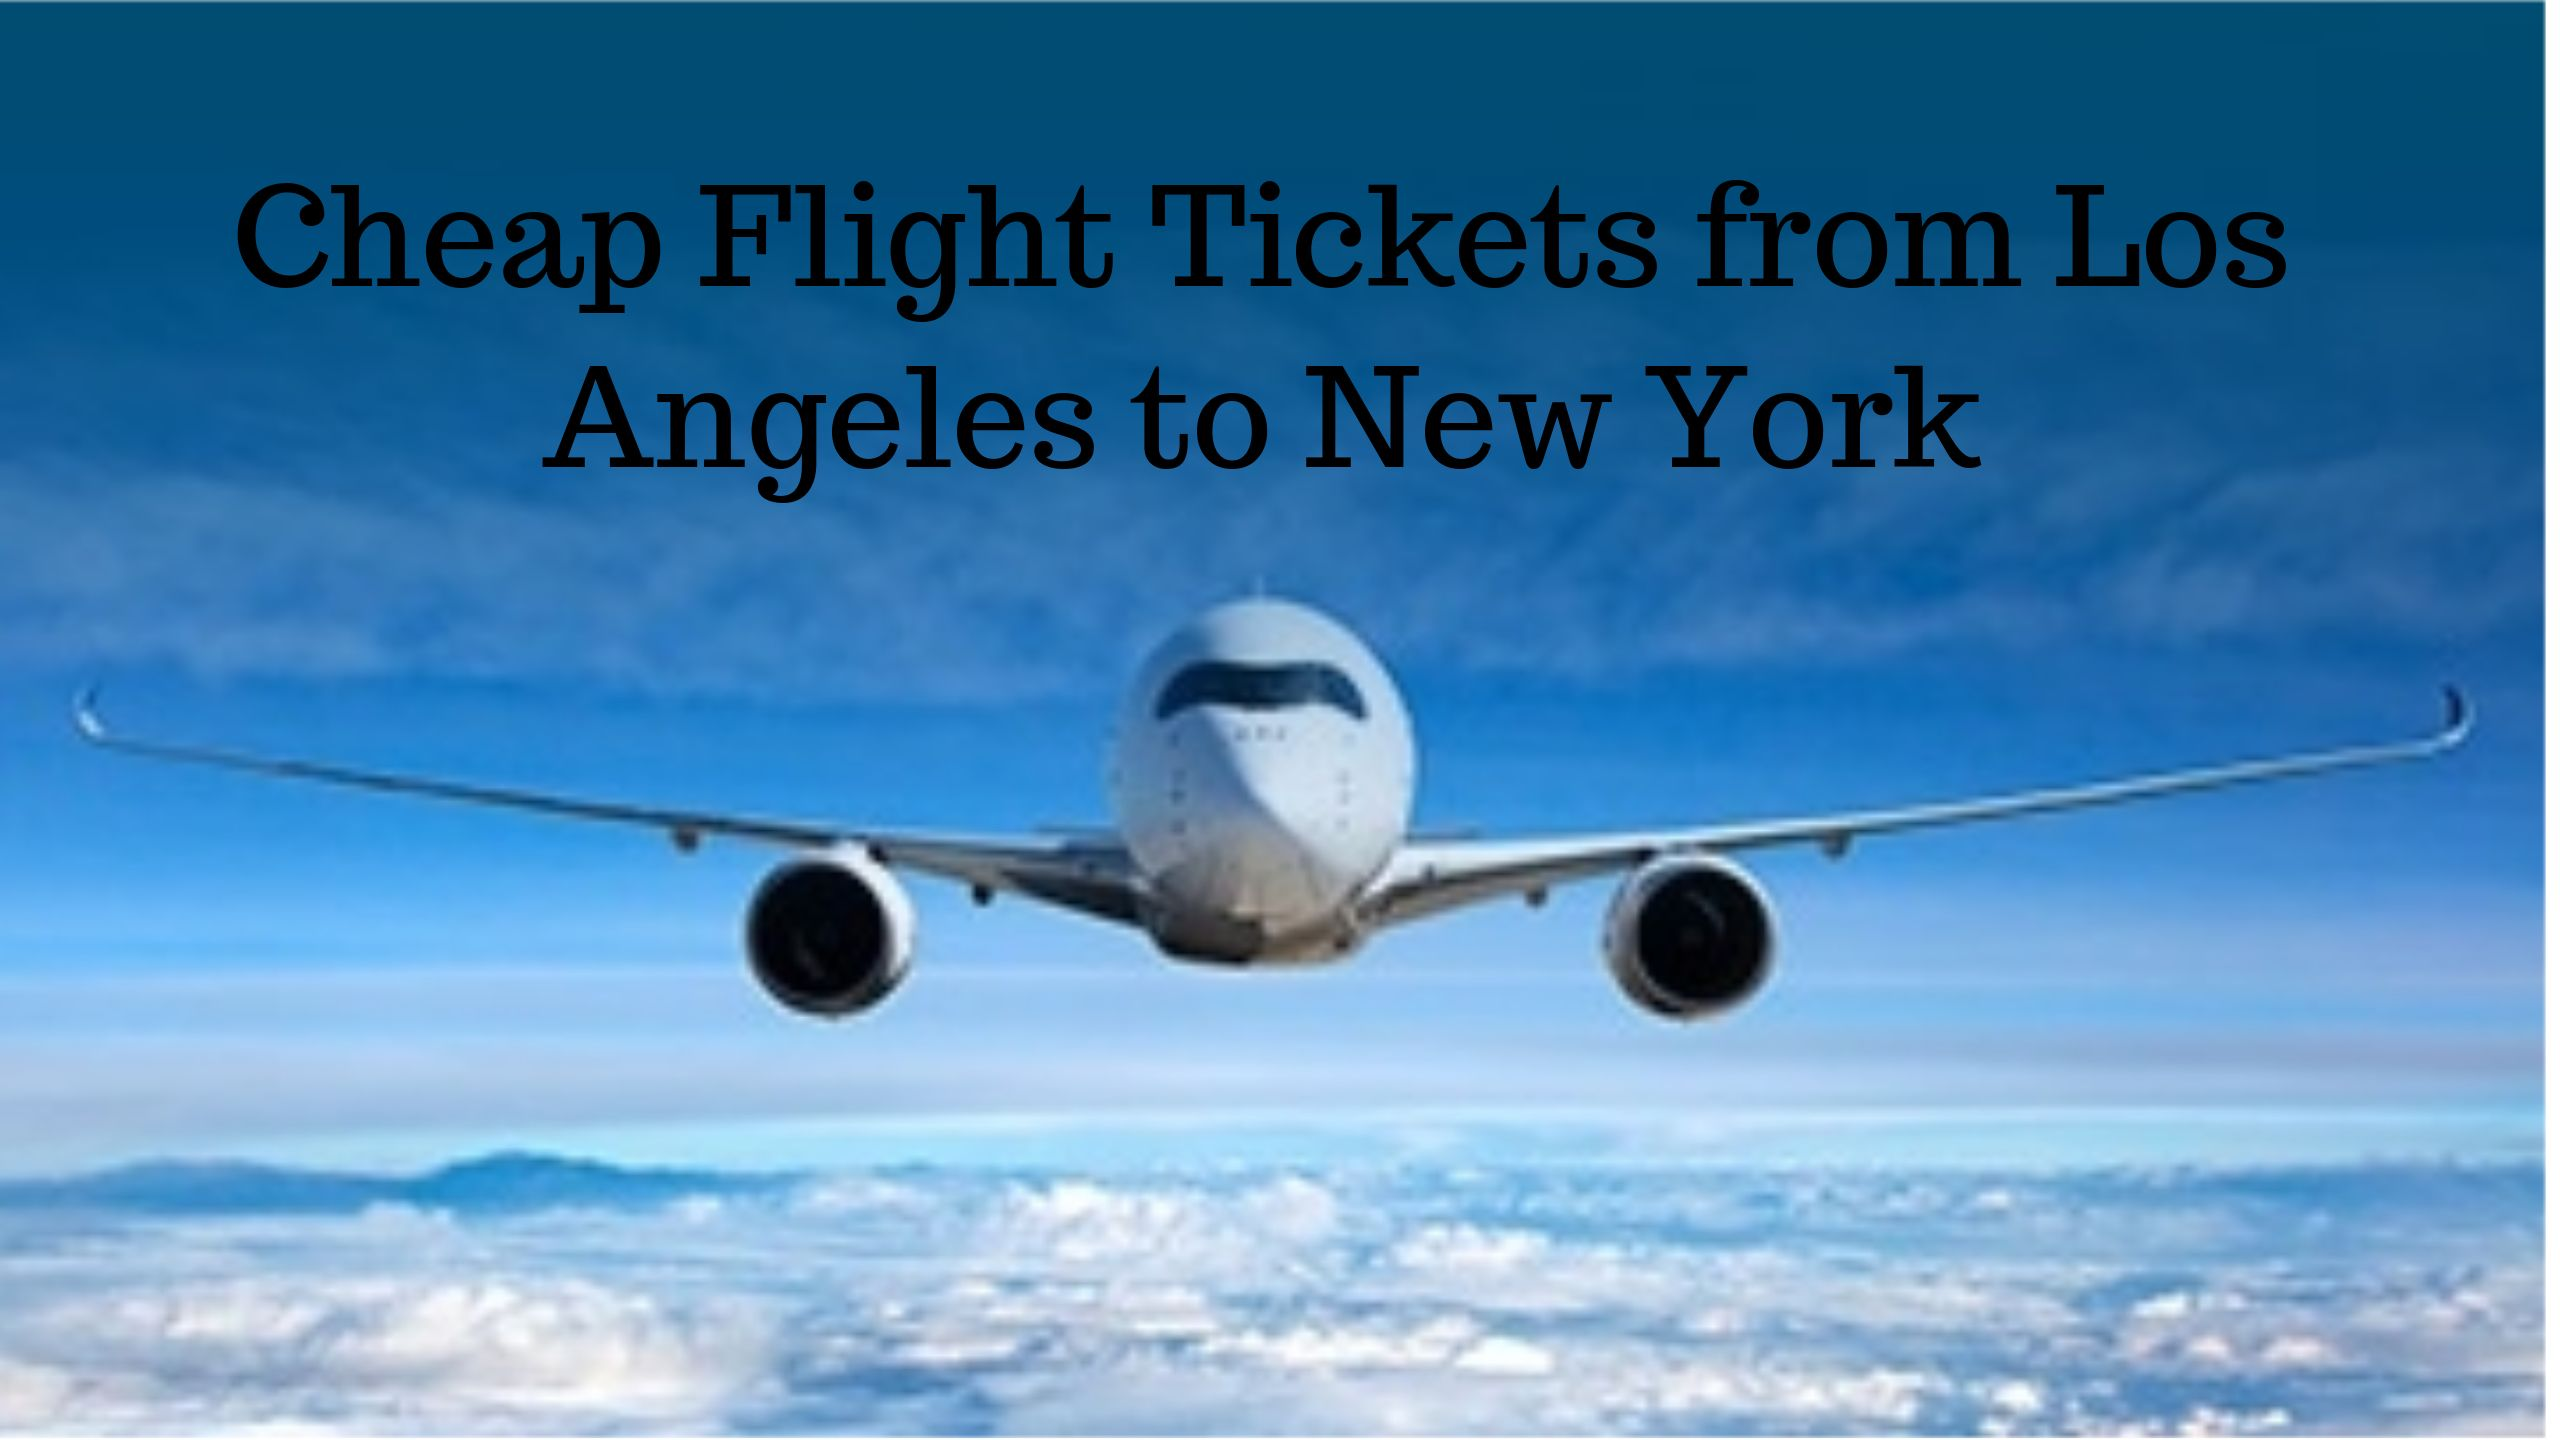 Cheap Flight Deals From Lax - United Airlines and Travelling